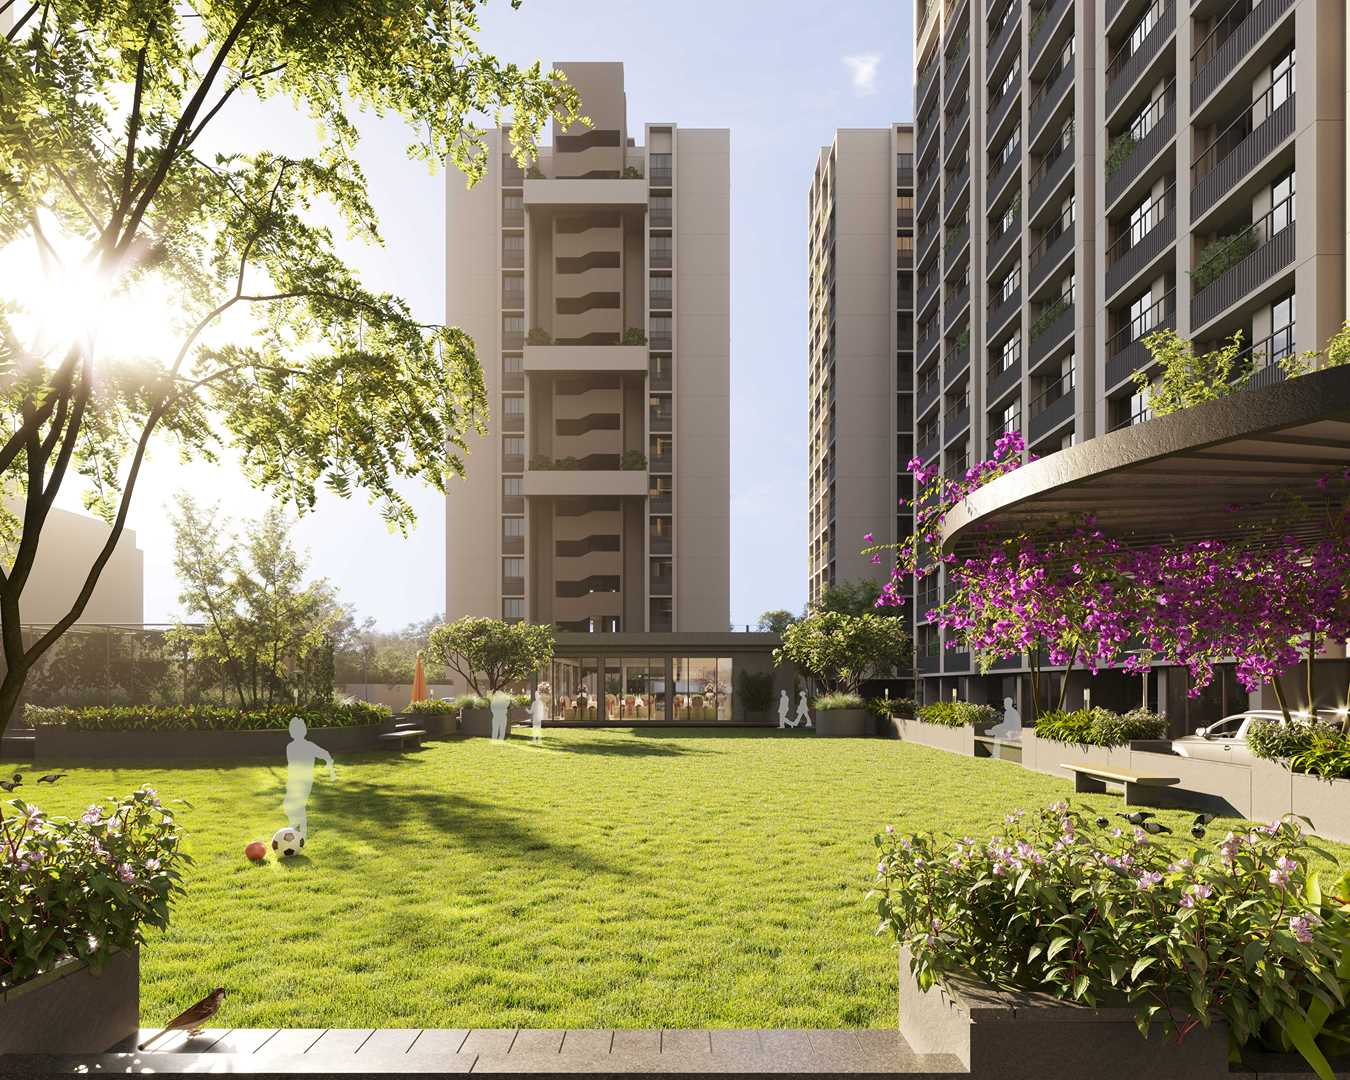 Wondering what your life would look like at Sun Rising Homes ?  Here's a walkthrough of your dream abode where the fulfillment of your aims & aspirations will take place. Witness yourself taking pleasure in your freedom and rediscovering a world of comfort & convenience.  1 & 1.5 BHK Compact Homes come with plush amenities and soothing environments, in close proximity to SG Highway & well-populated townships.  For Details Call: +91 95128 06115  Architect: @hm.architects Location: B/S Godrej Garden City, Jagatpur Status: Just Launched  #SunBuildersGroup #SunBuilders #SunRisingHomes #RisingHomes #Residental #Retail #CompactLiving #AffordableHomes #Homes #1BHK #1.5BHK #Jagatpur #BuildingCommunities #RealEstateAhmedabad